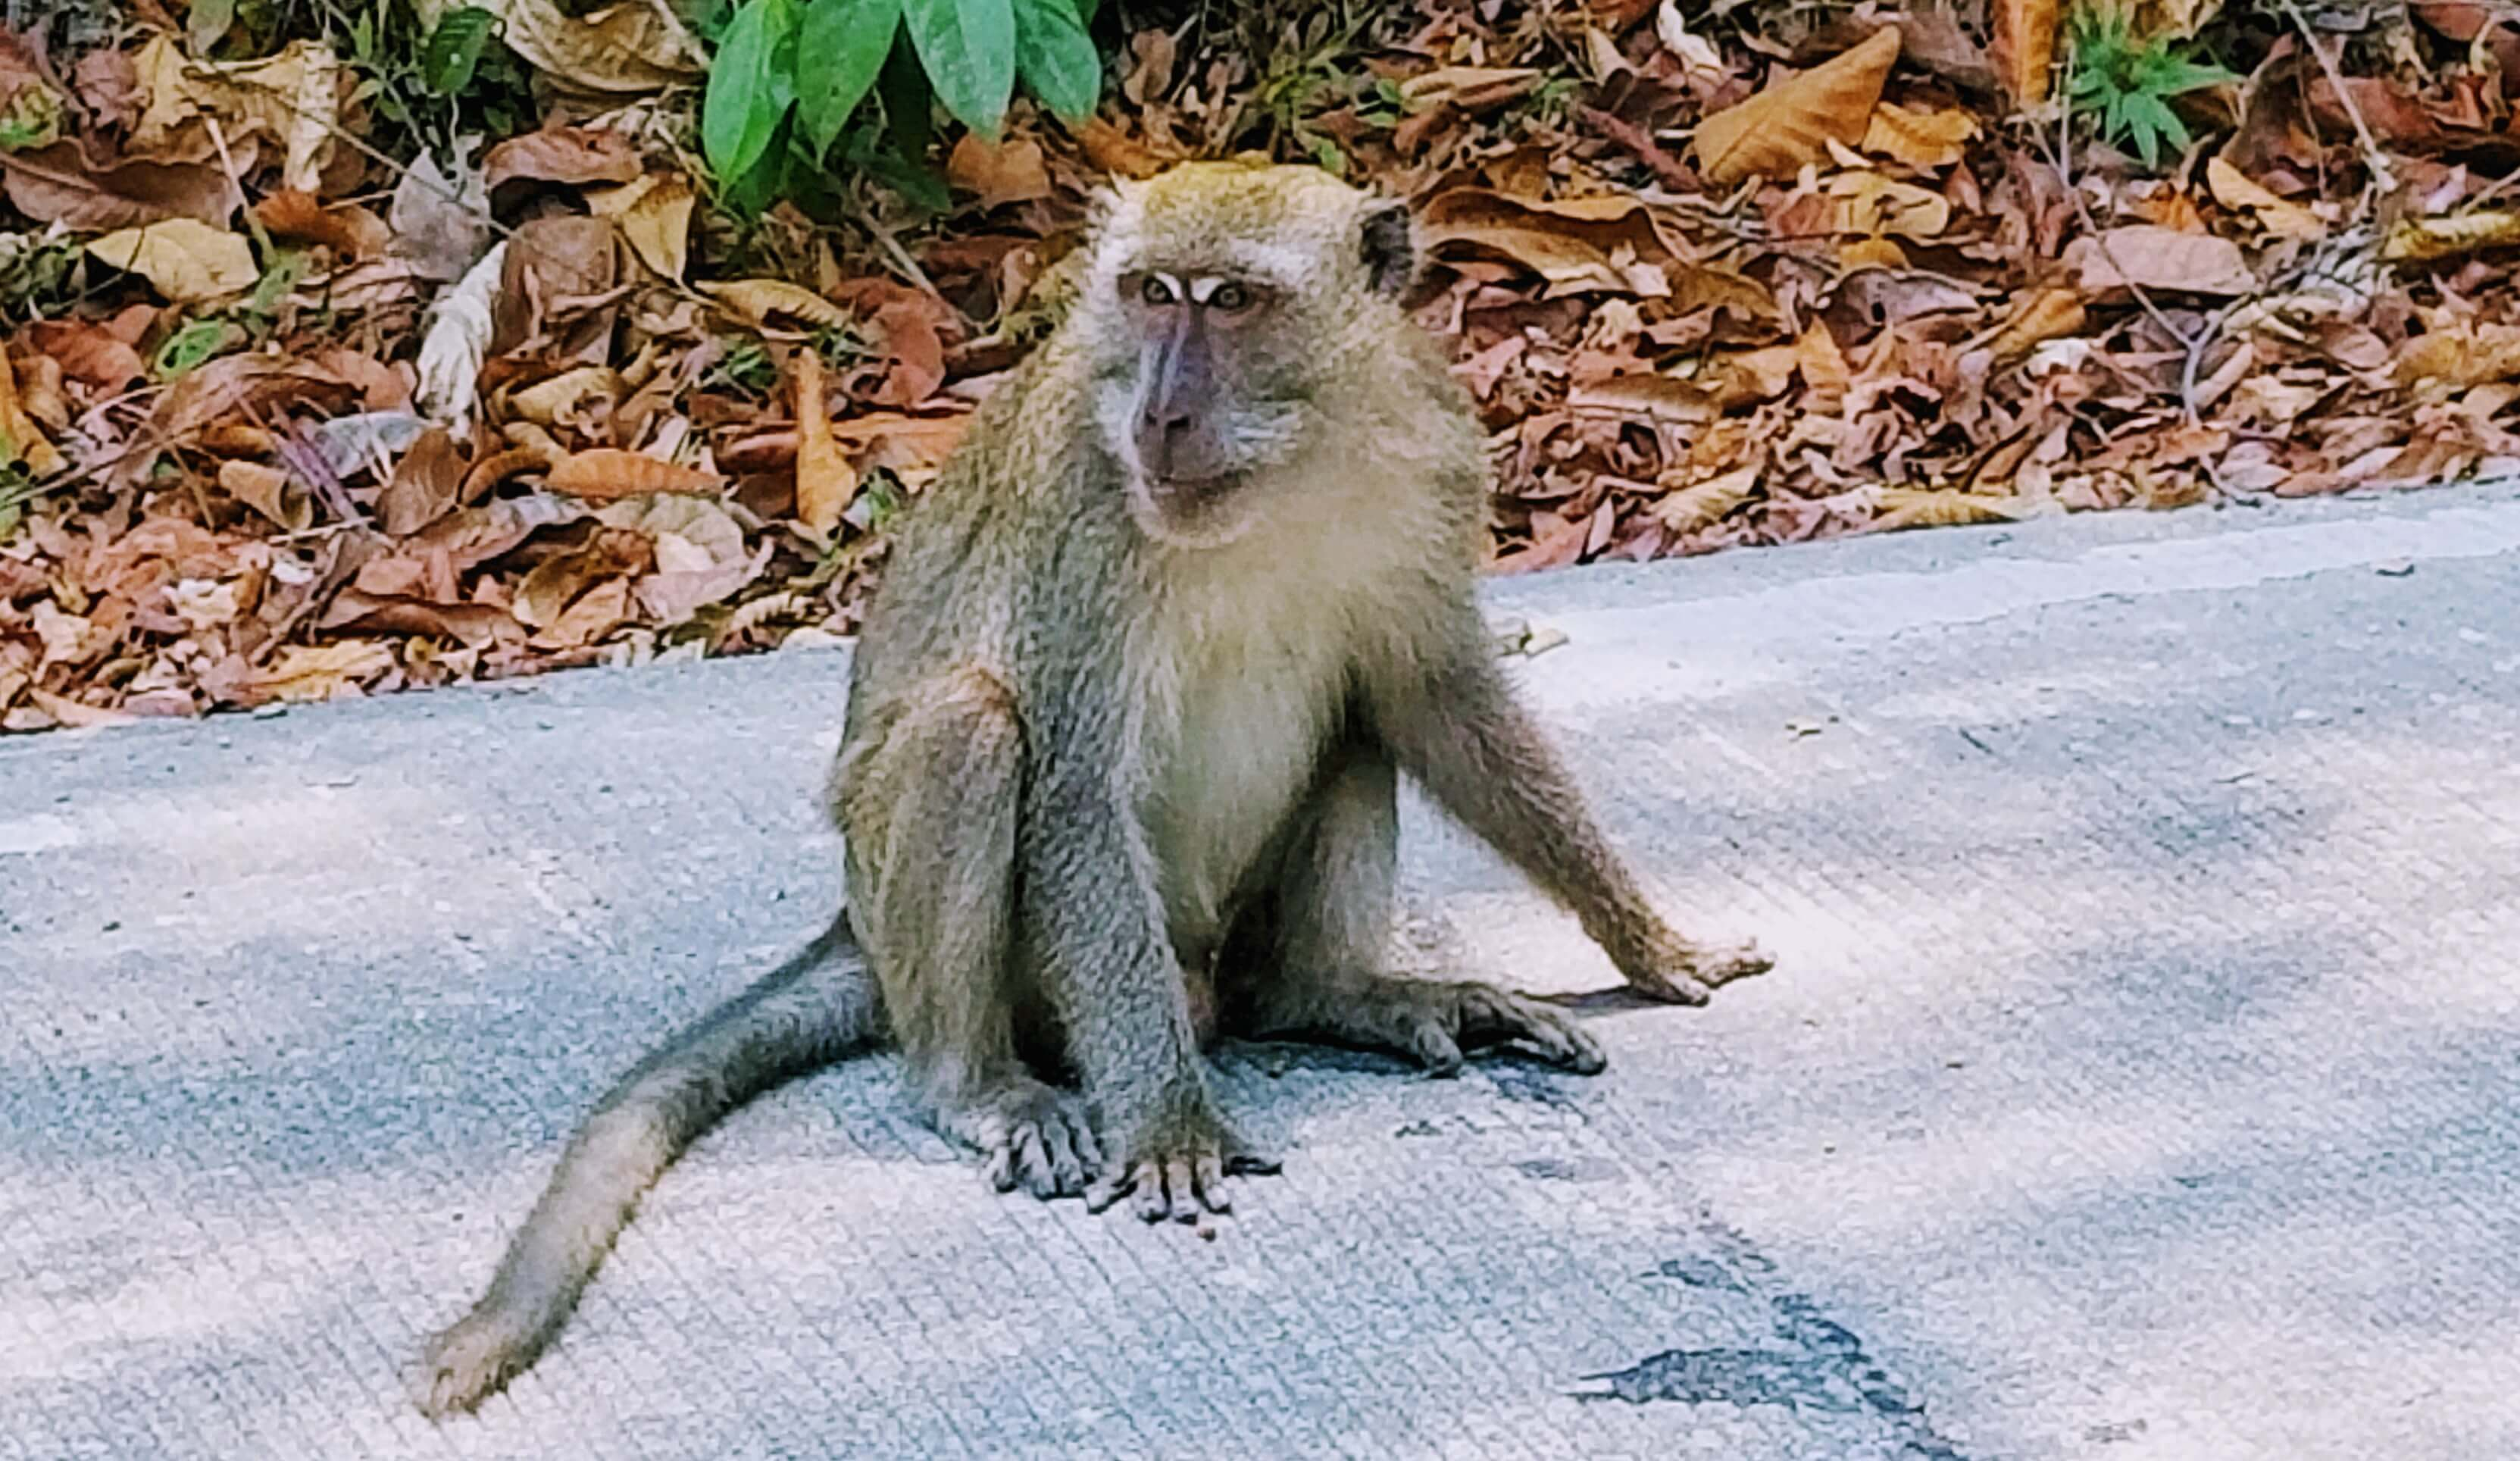 Monkey sitting at the entrance of Mu Ko Lanta National Park